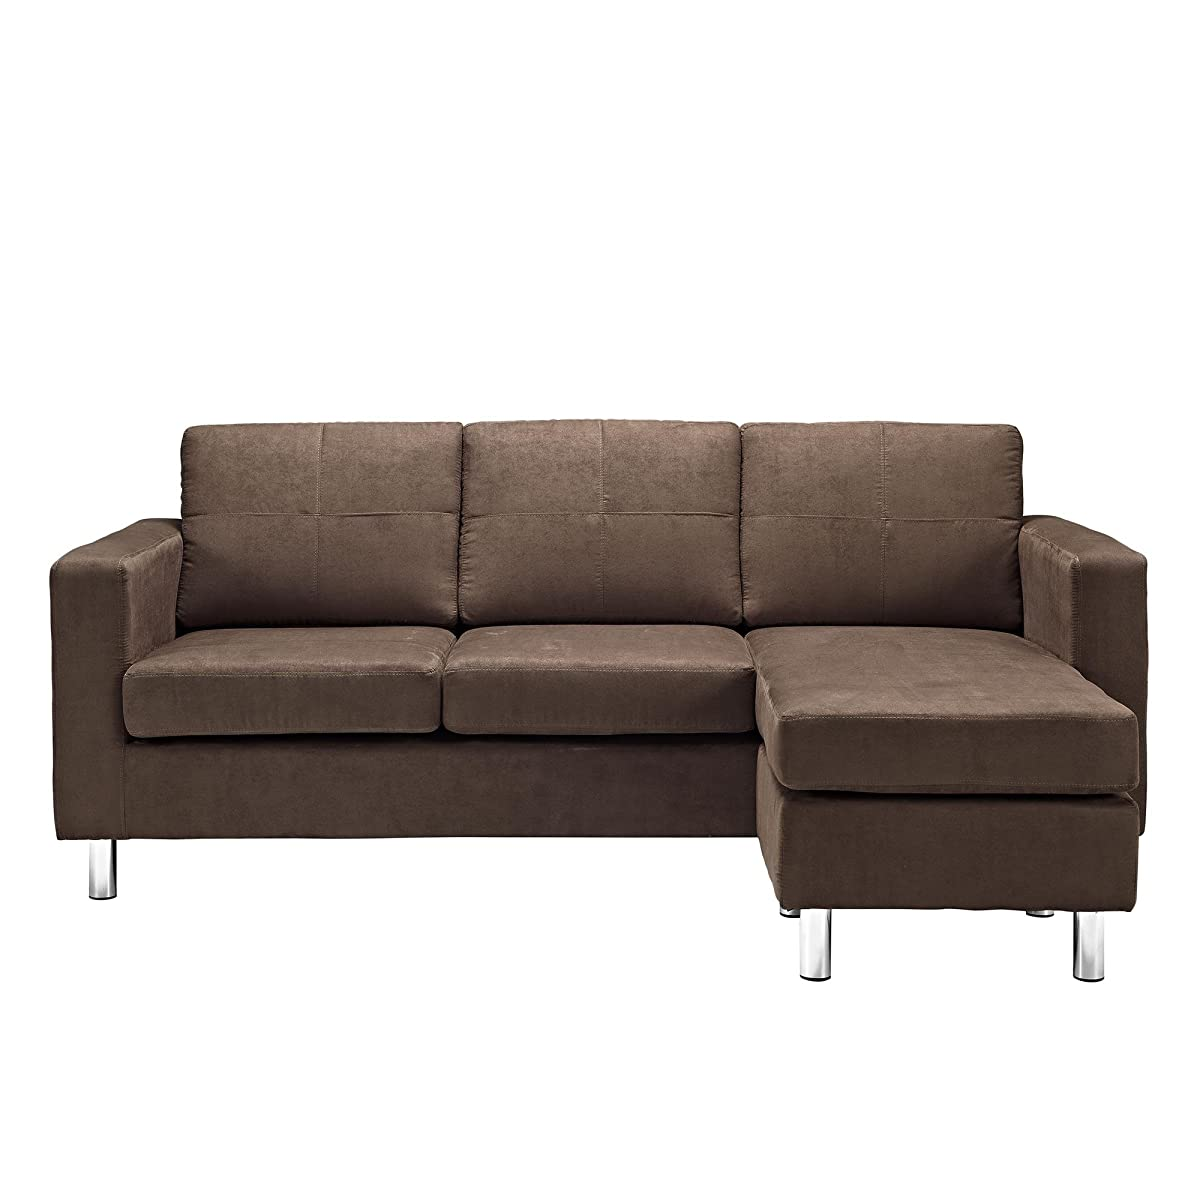 Dorel Living Small Spaces Configurable Sectional Sofa, Brown